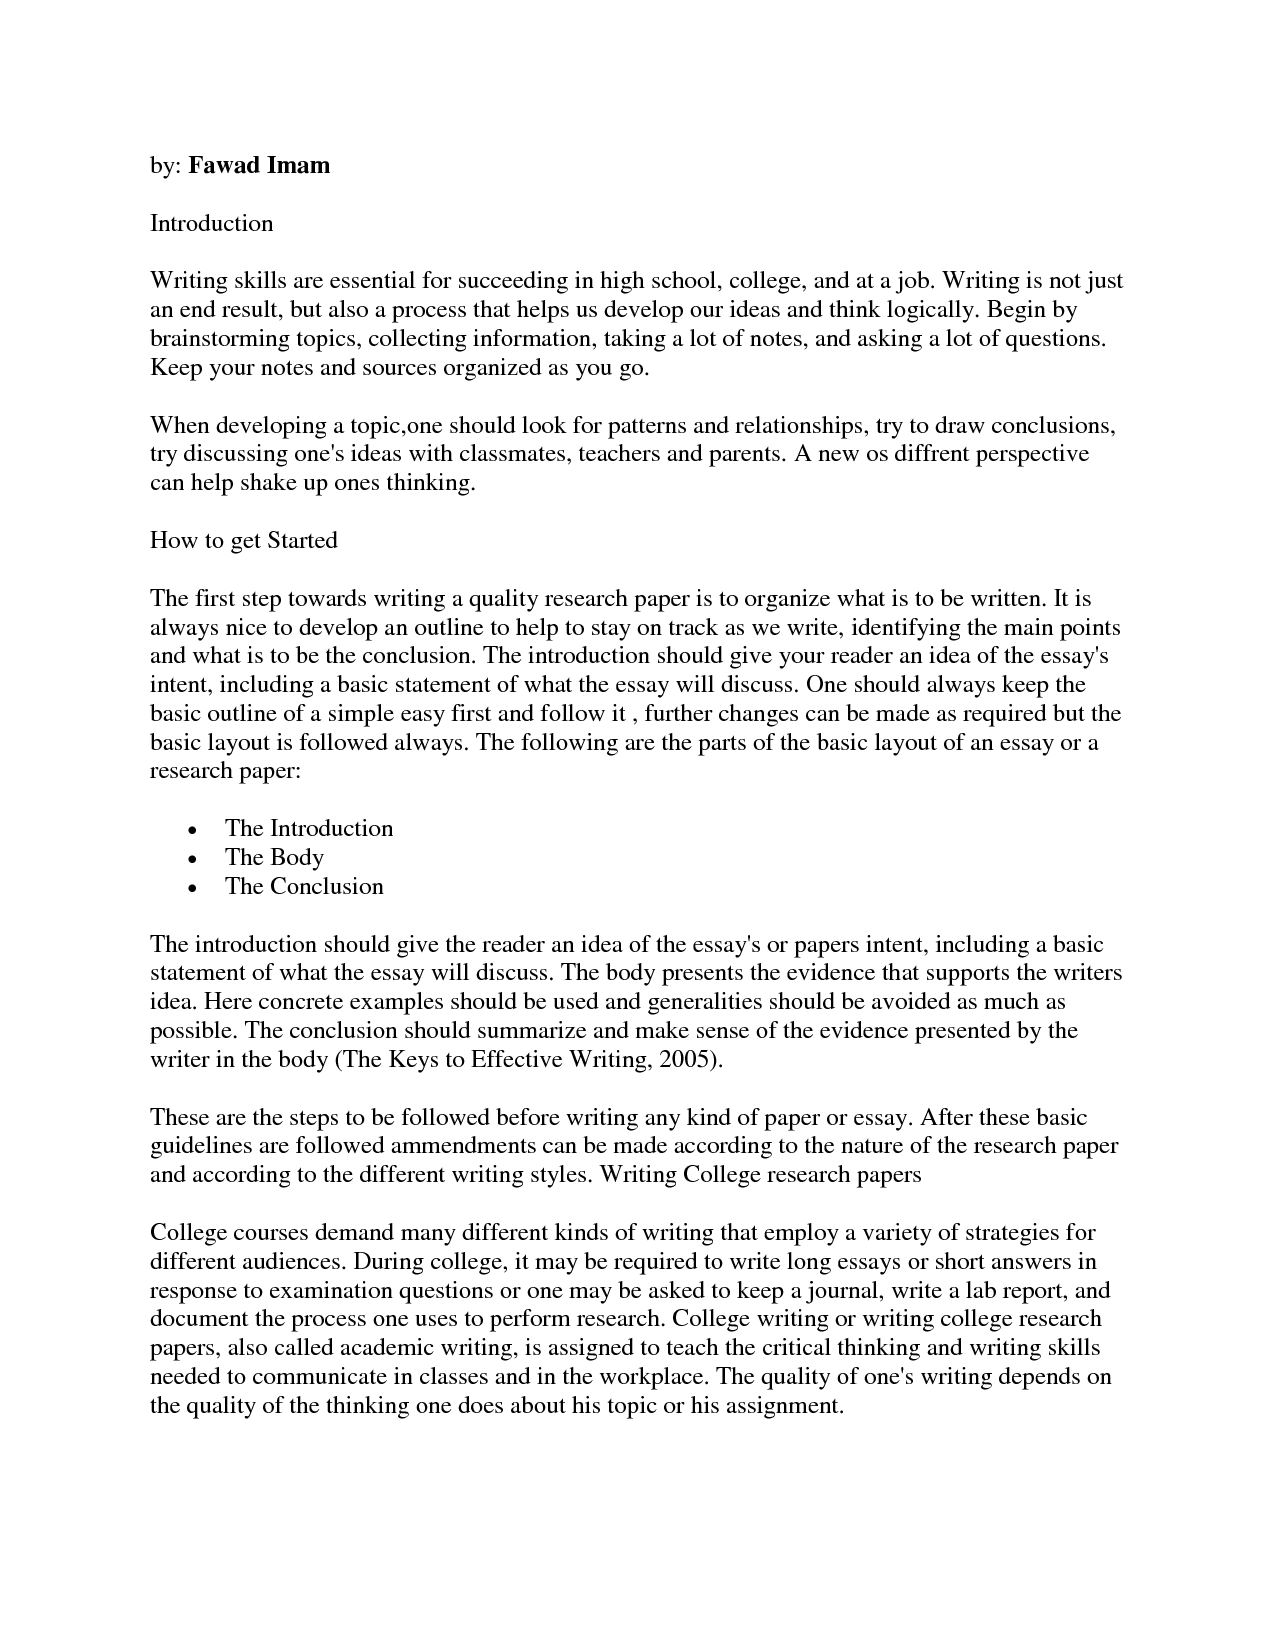 021 Ypfi7ickiv Research Paper How To Breathtaking Write Objectives An Abstract For English A Conclusion Apa Full